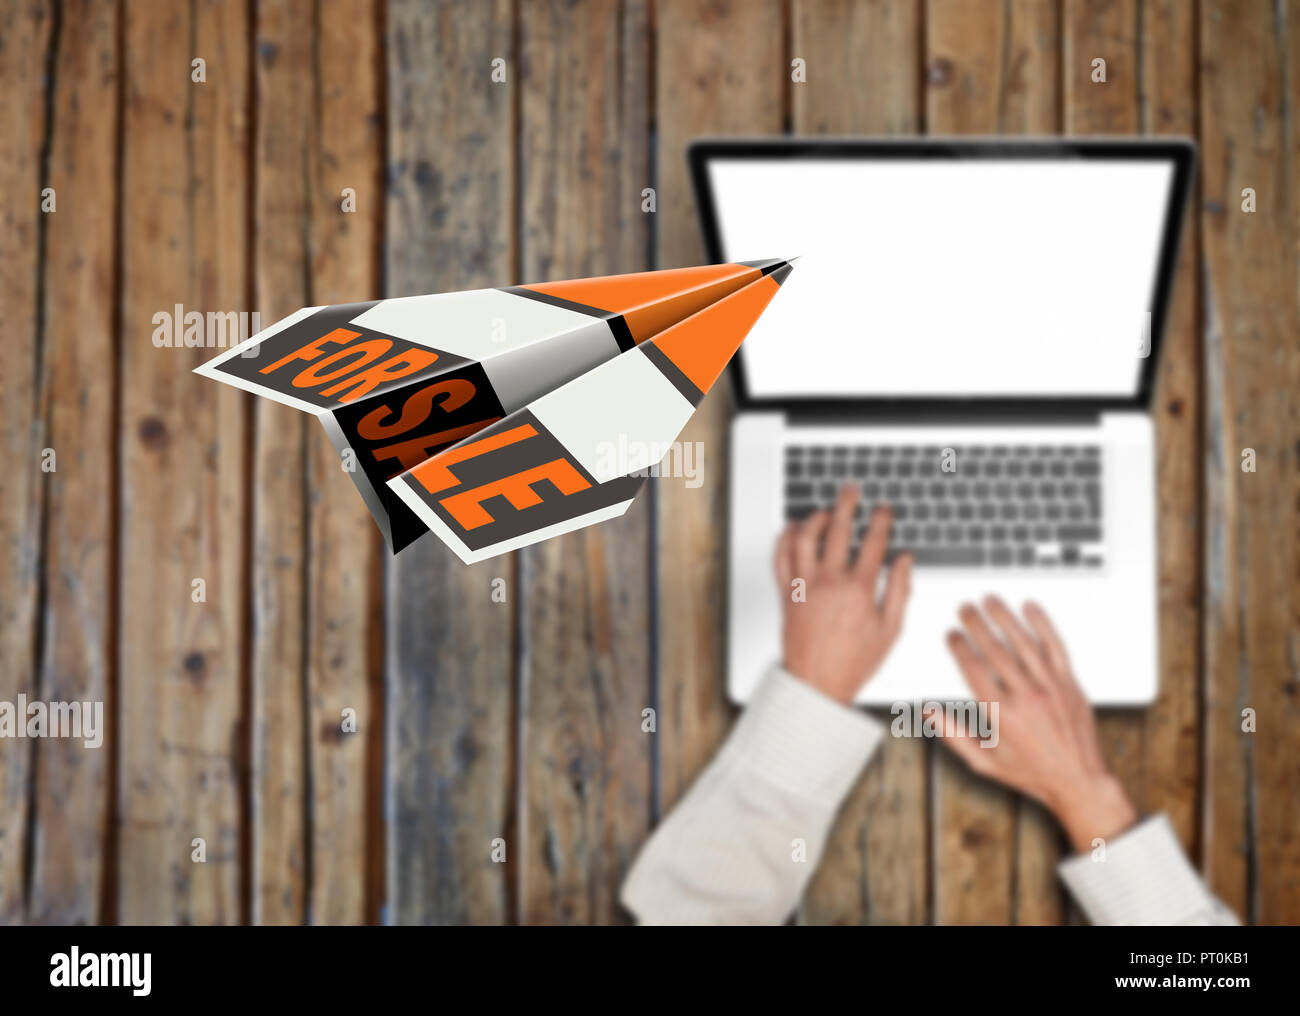 flying paper plane with the words for sale and businessman wearing a